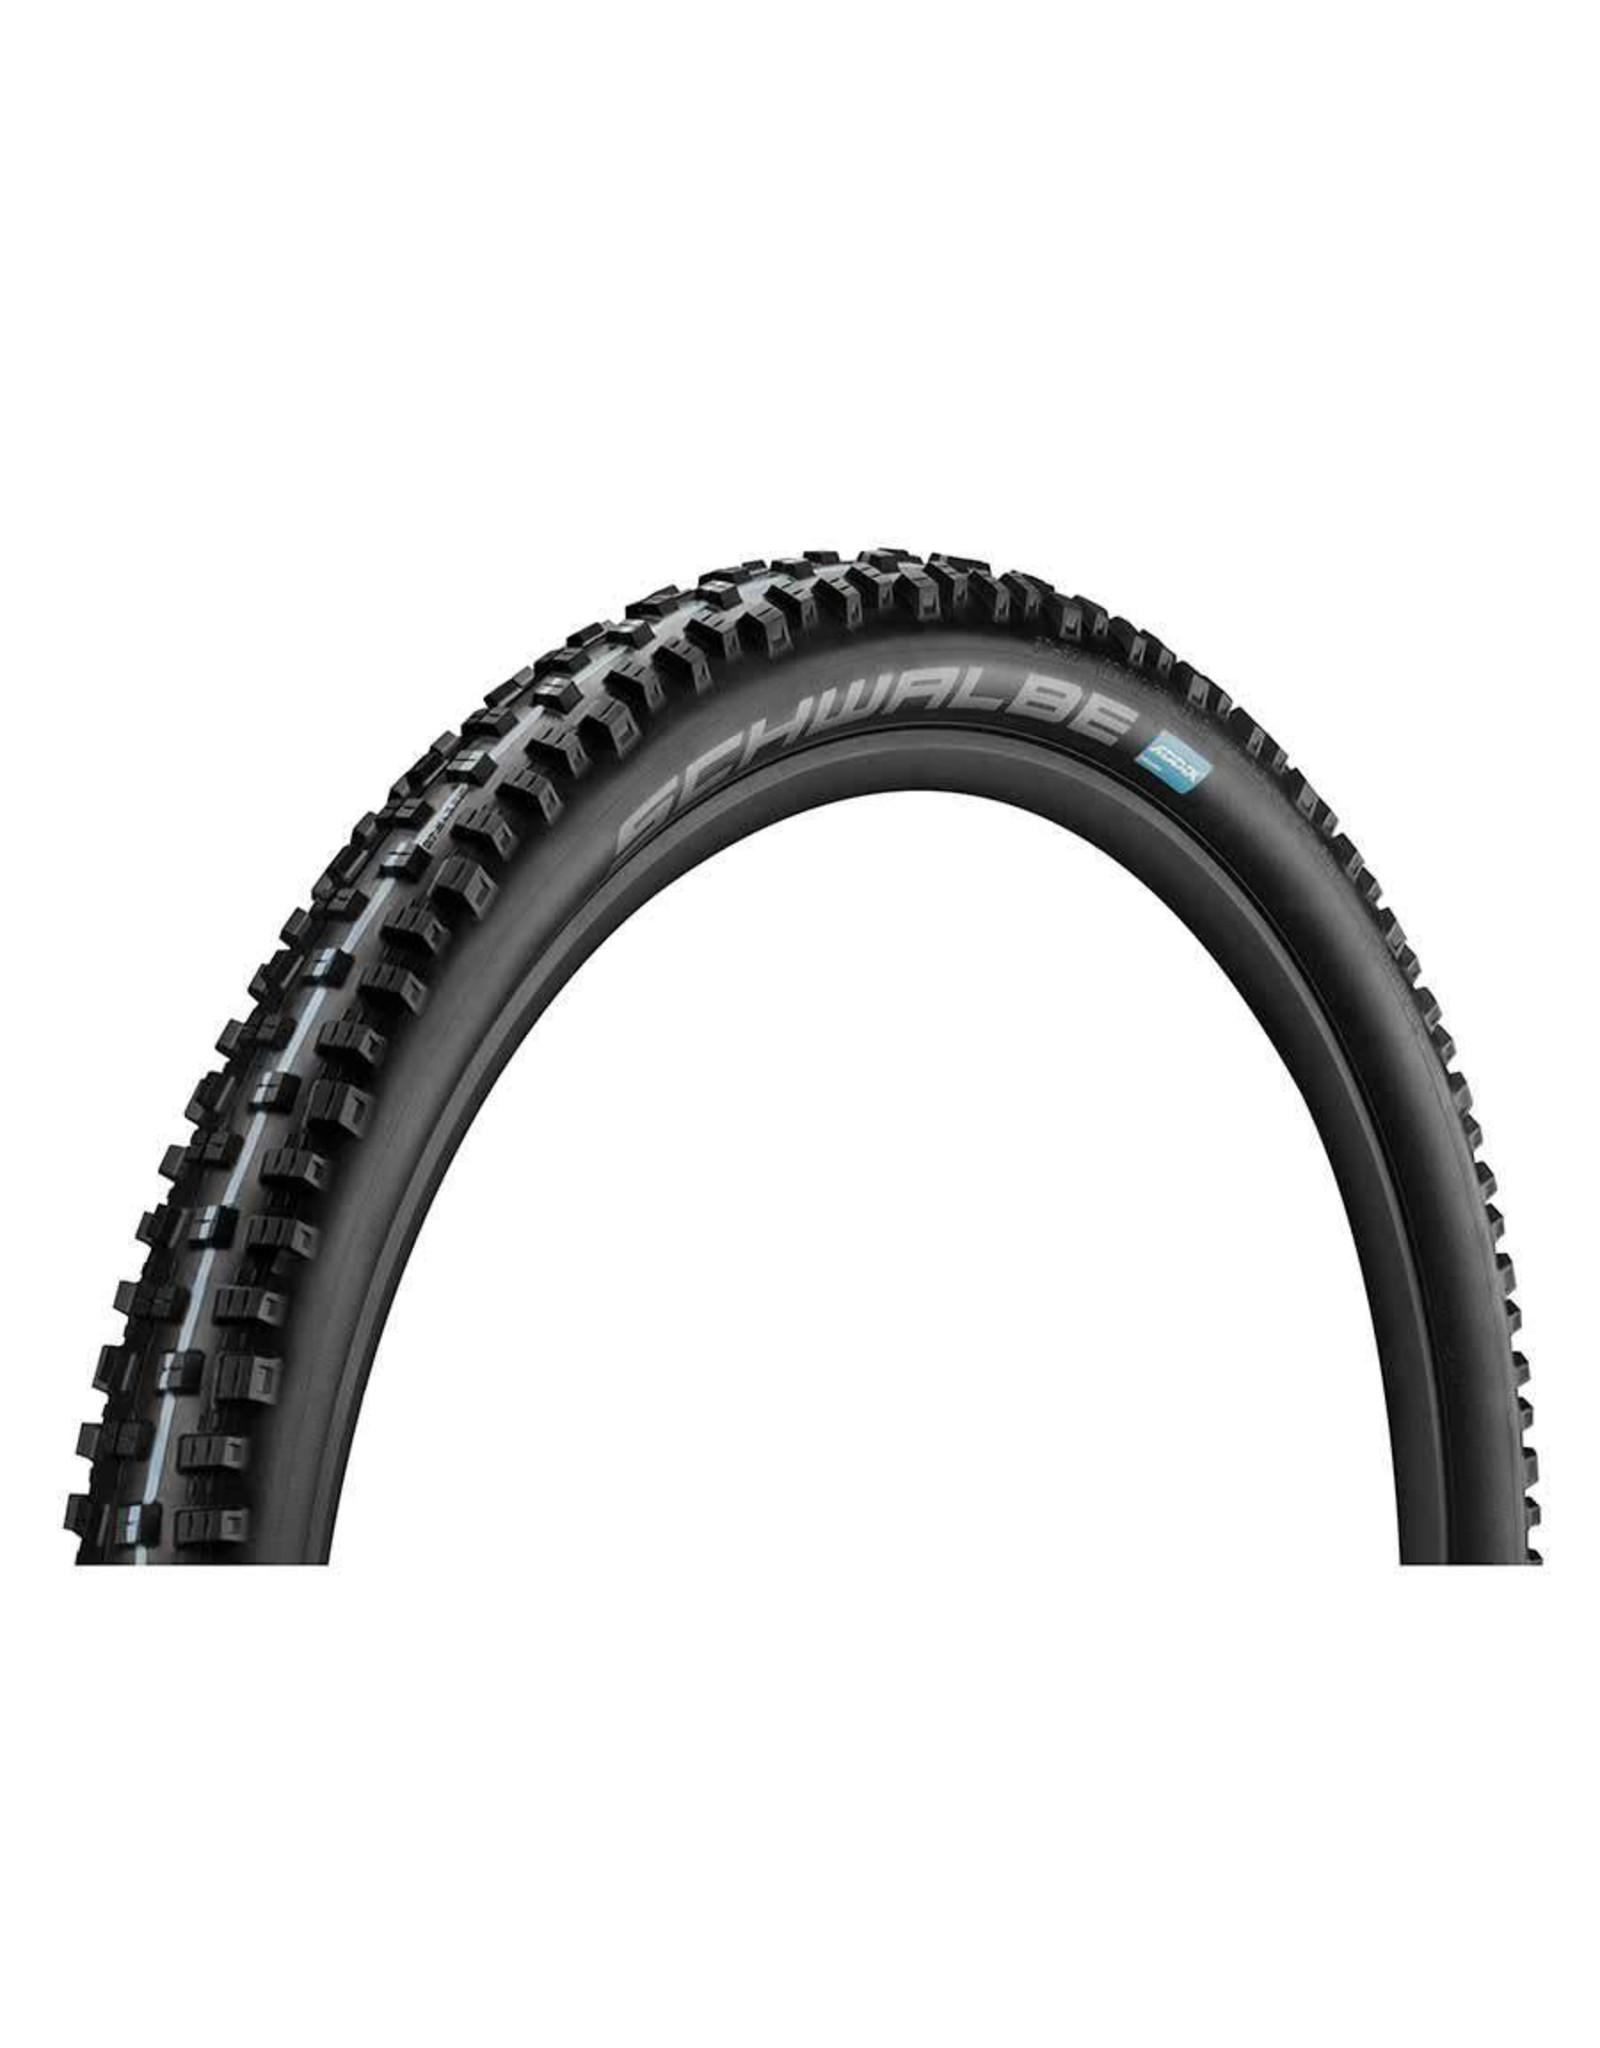 Schwalbe Schwalbe, Nobby Nic, Tire, 27.5''x2.60, Folding, Tubeless Ready, Addix Speedgrip, SnakeSkin, Apex, 67TPI, Black